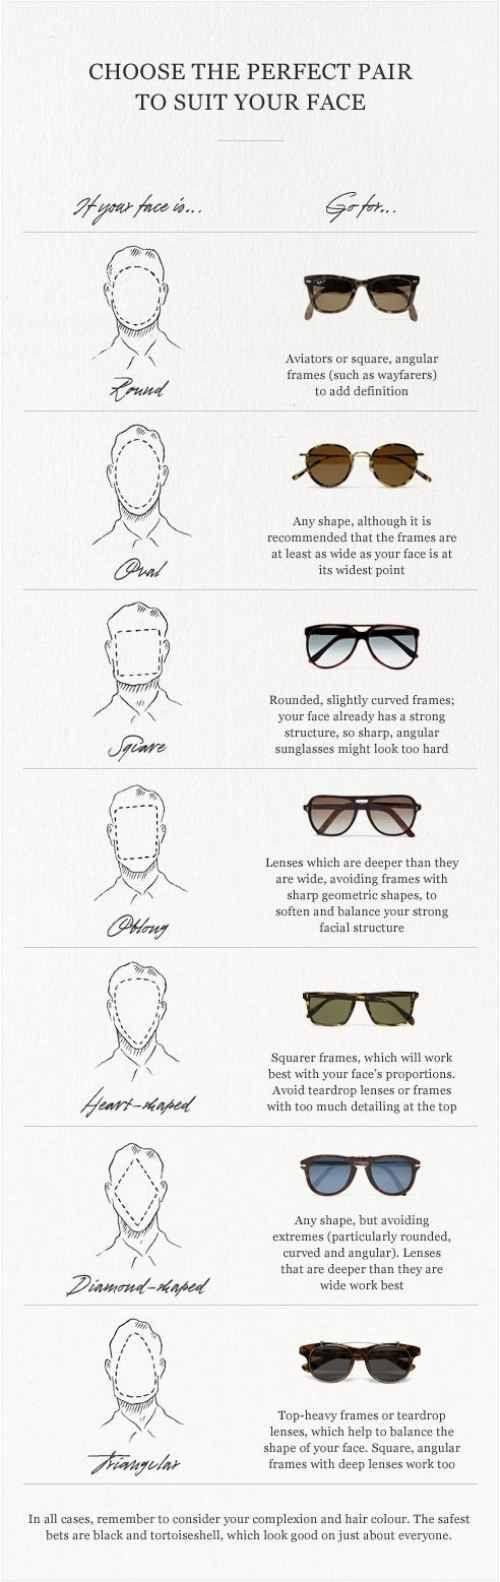 Be even more handsome while on vacation with this face chart to allow you the perfect shaped sun glasses for you.